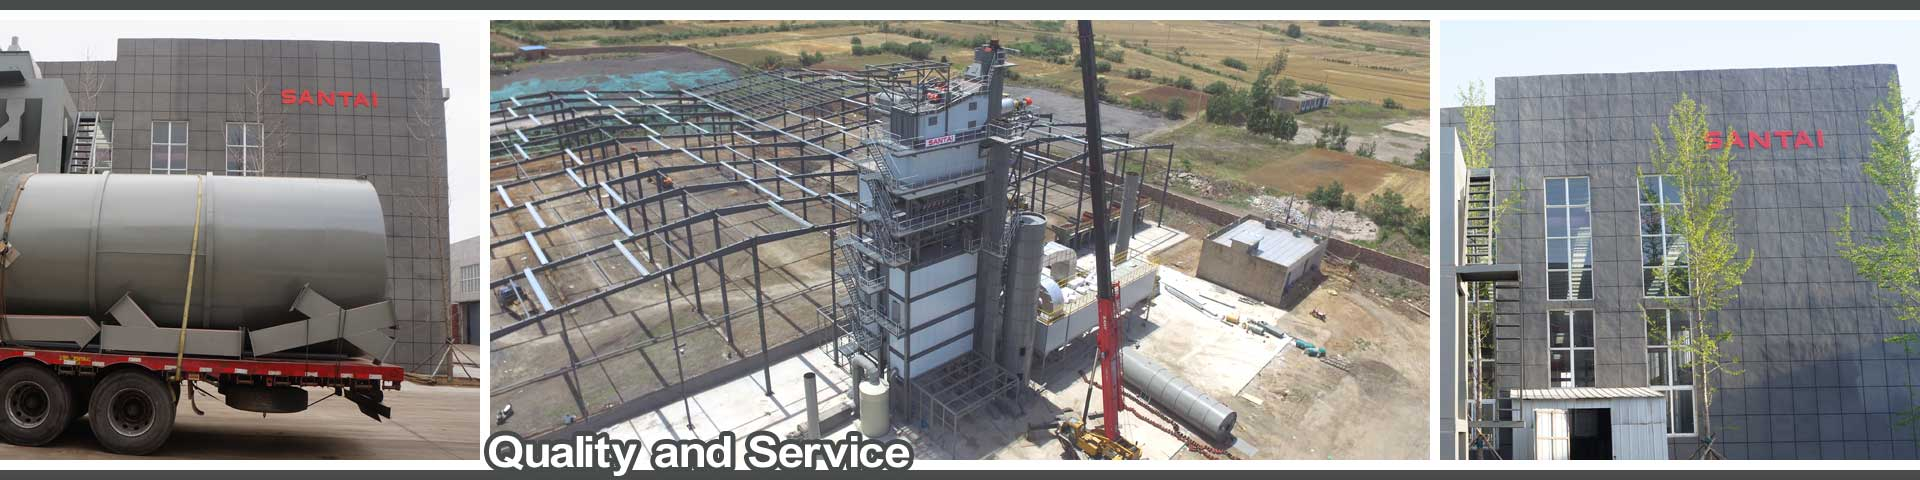 quality and service from good asphalt plant manufacturer